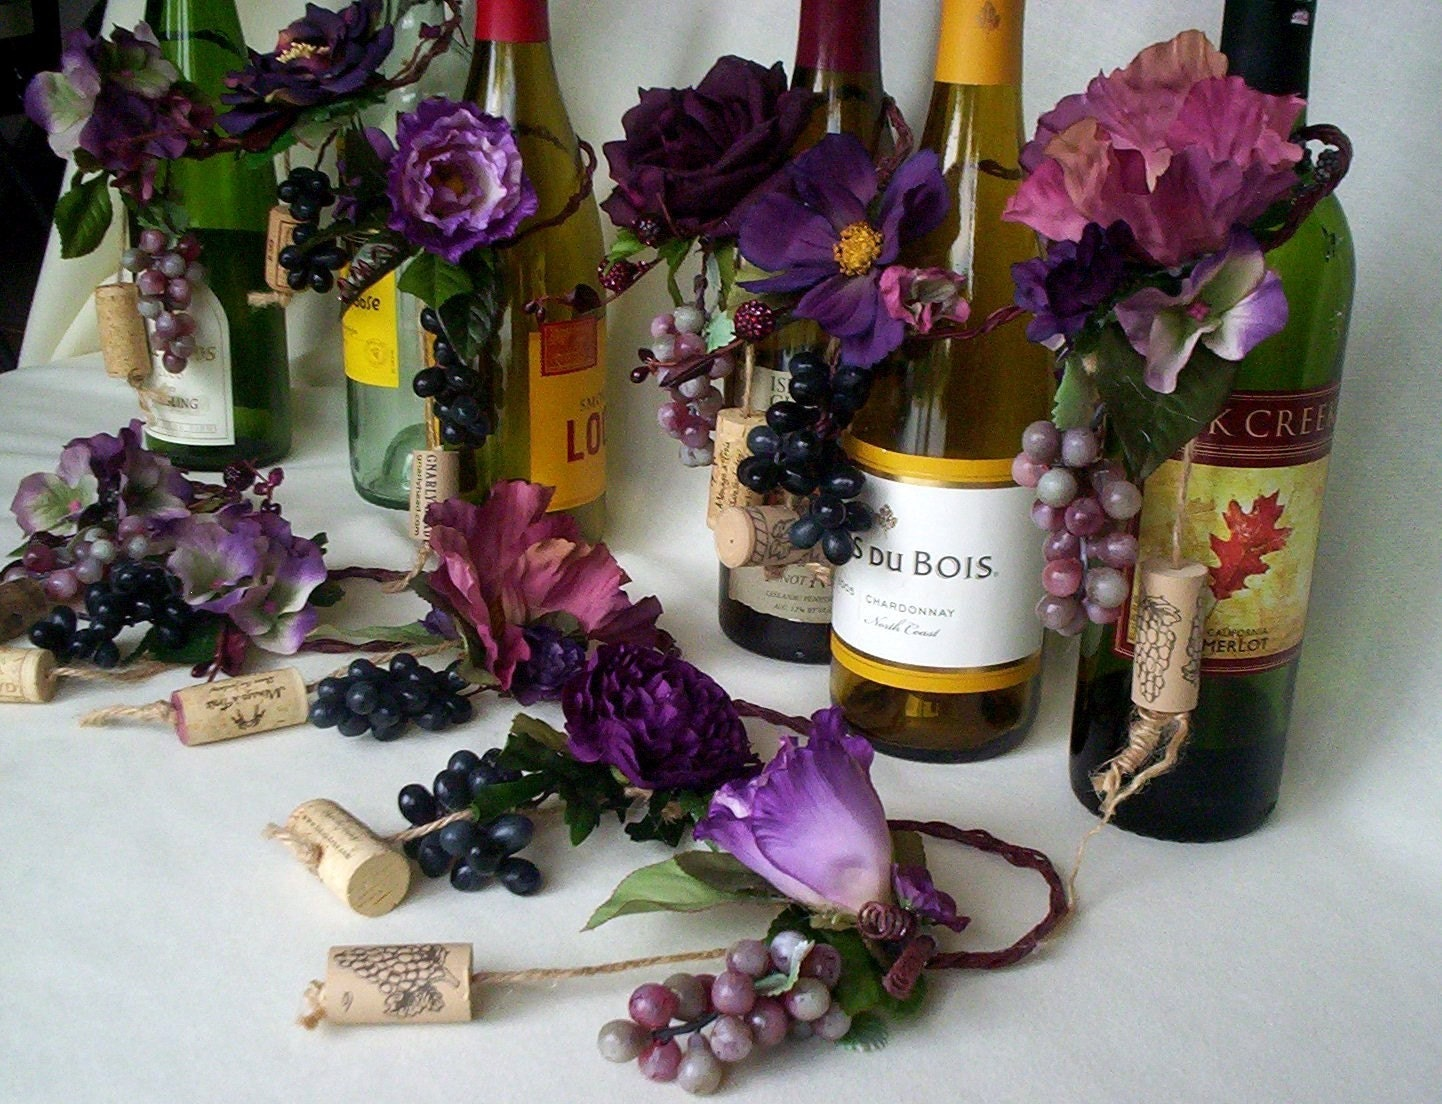 Plum wedding centerpiece wine bottle toppers grapes custom for Wedding table decorations with wine bottles